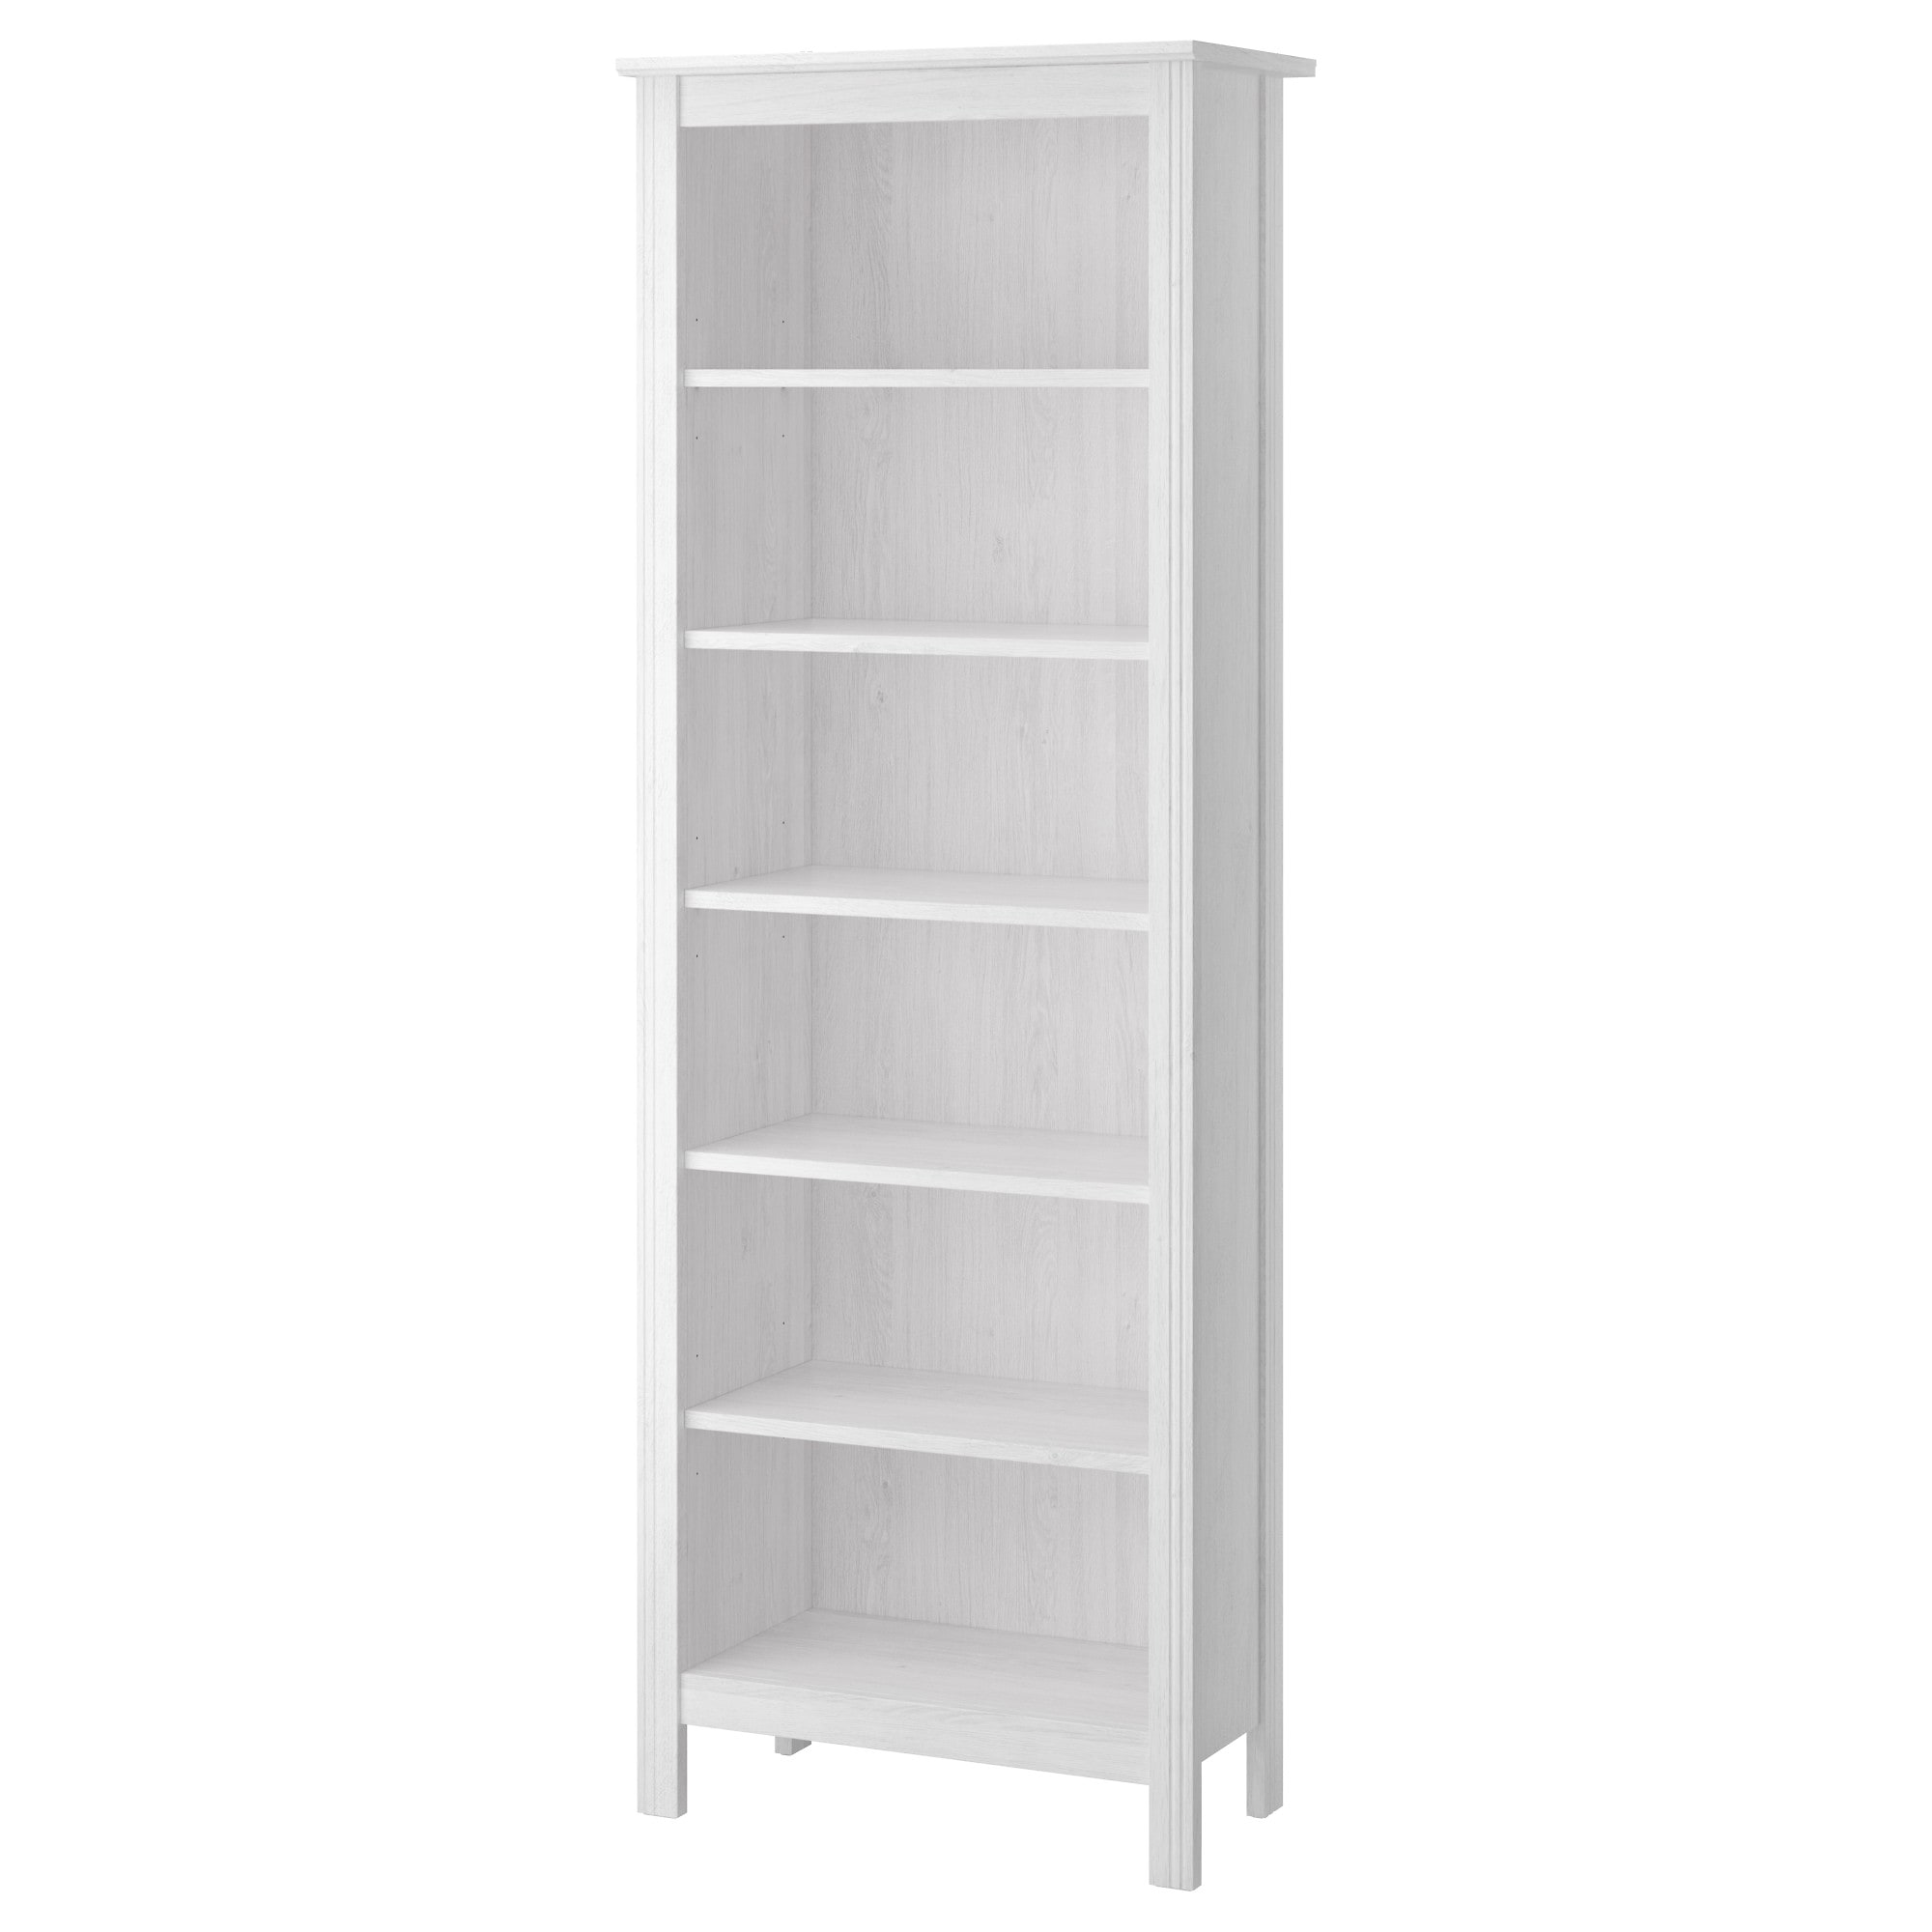 new product 3e172 370aa IKEA BRUSALI White Bookcase | For the Home in 2019 | Ikea ...